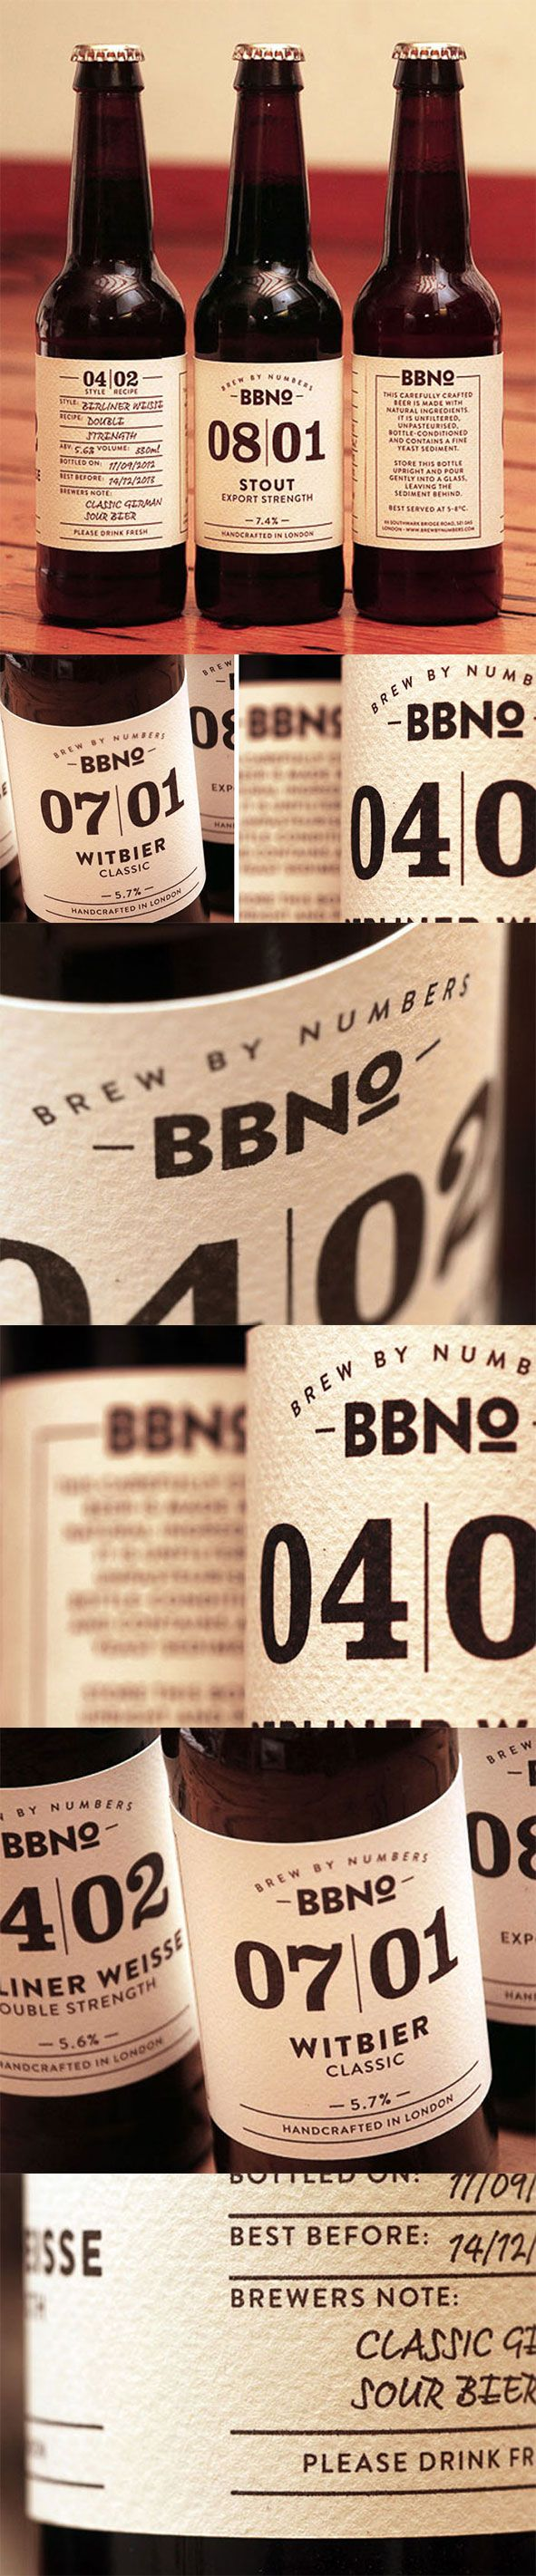 Brew by Numbers via The Dieline PD